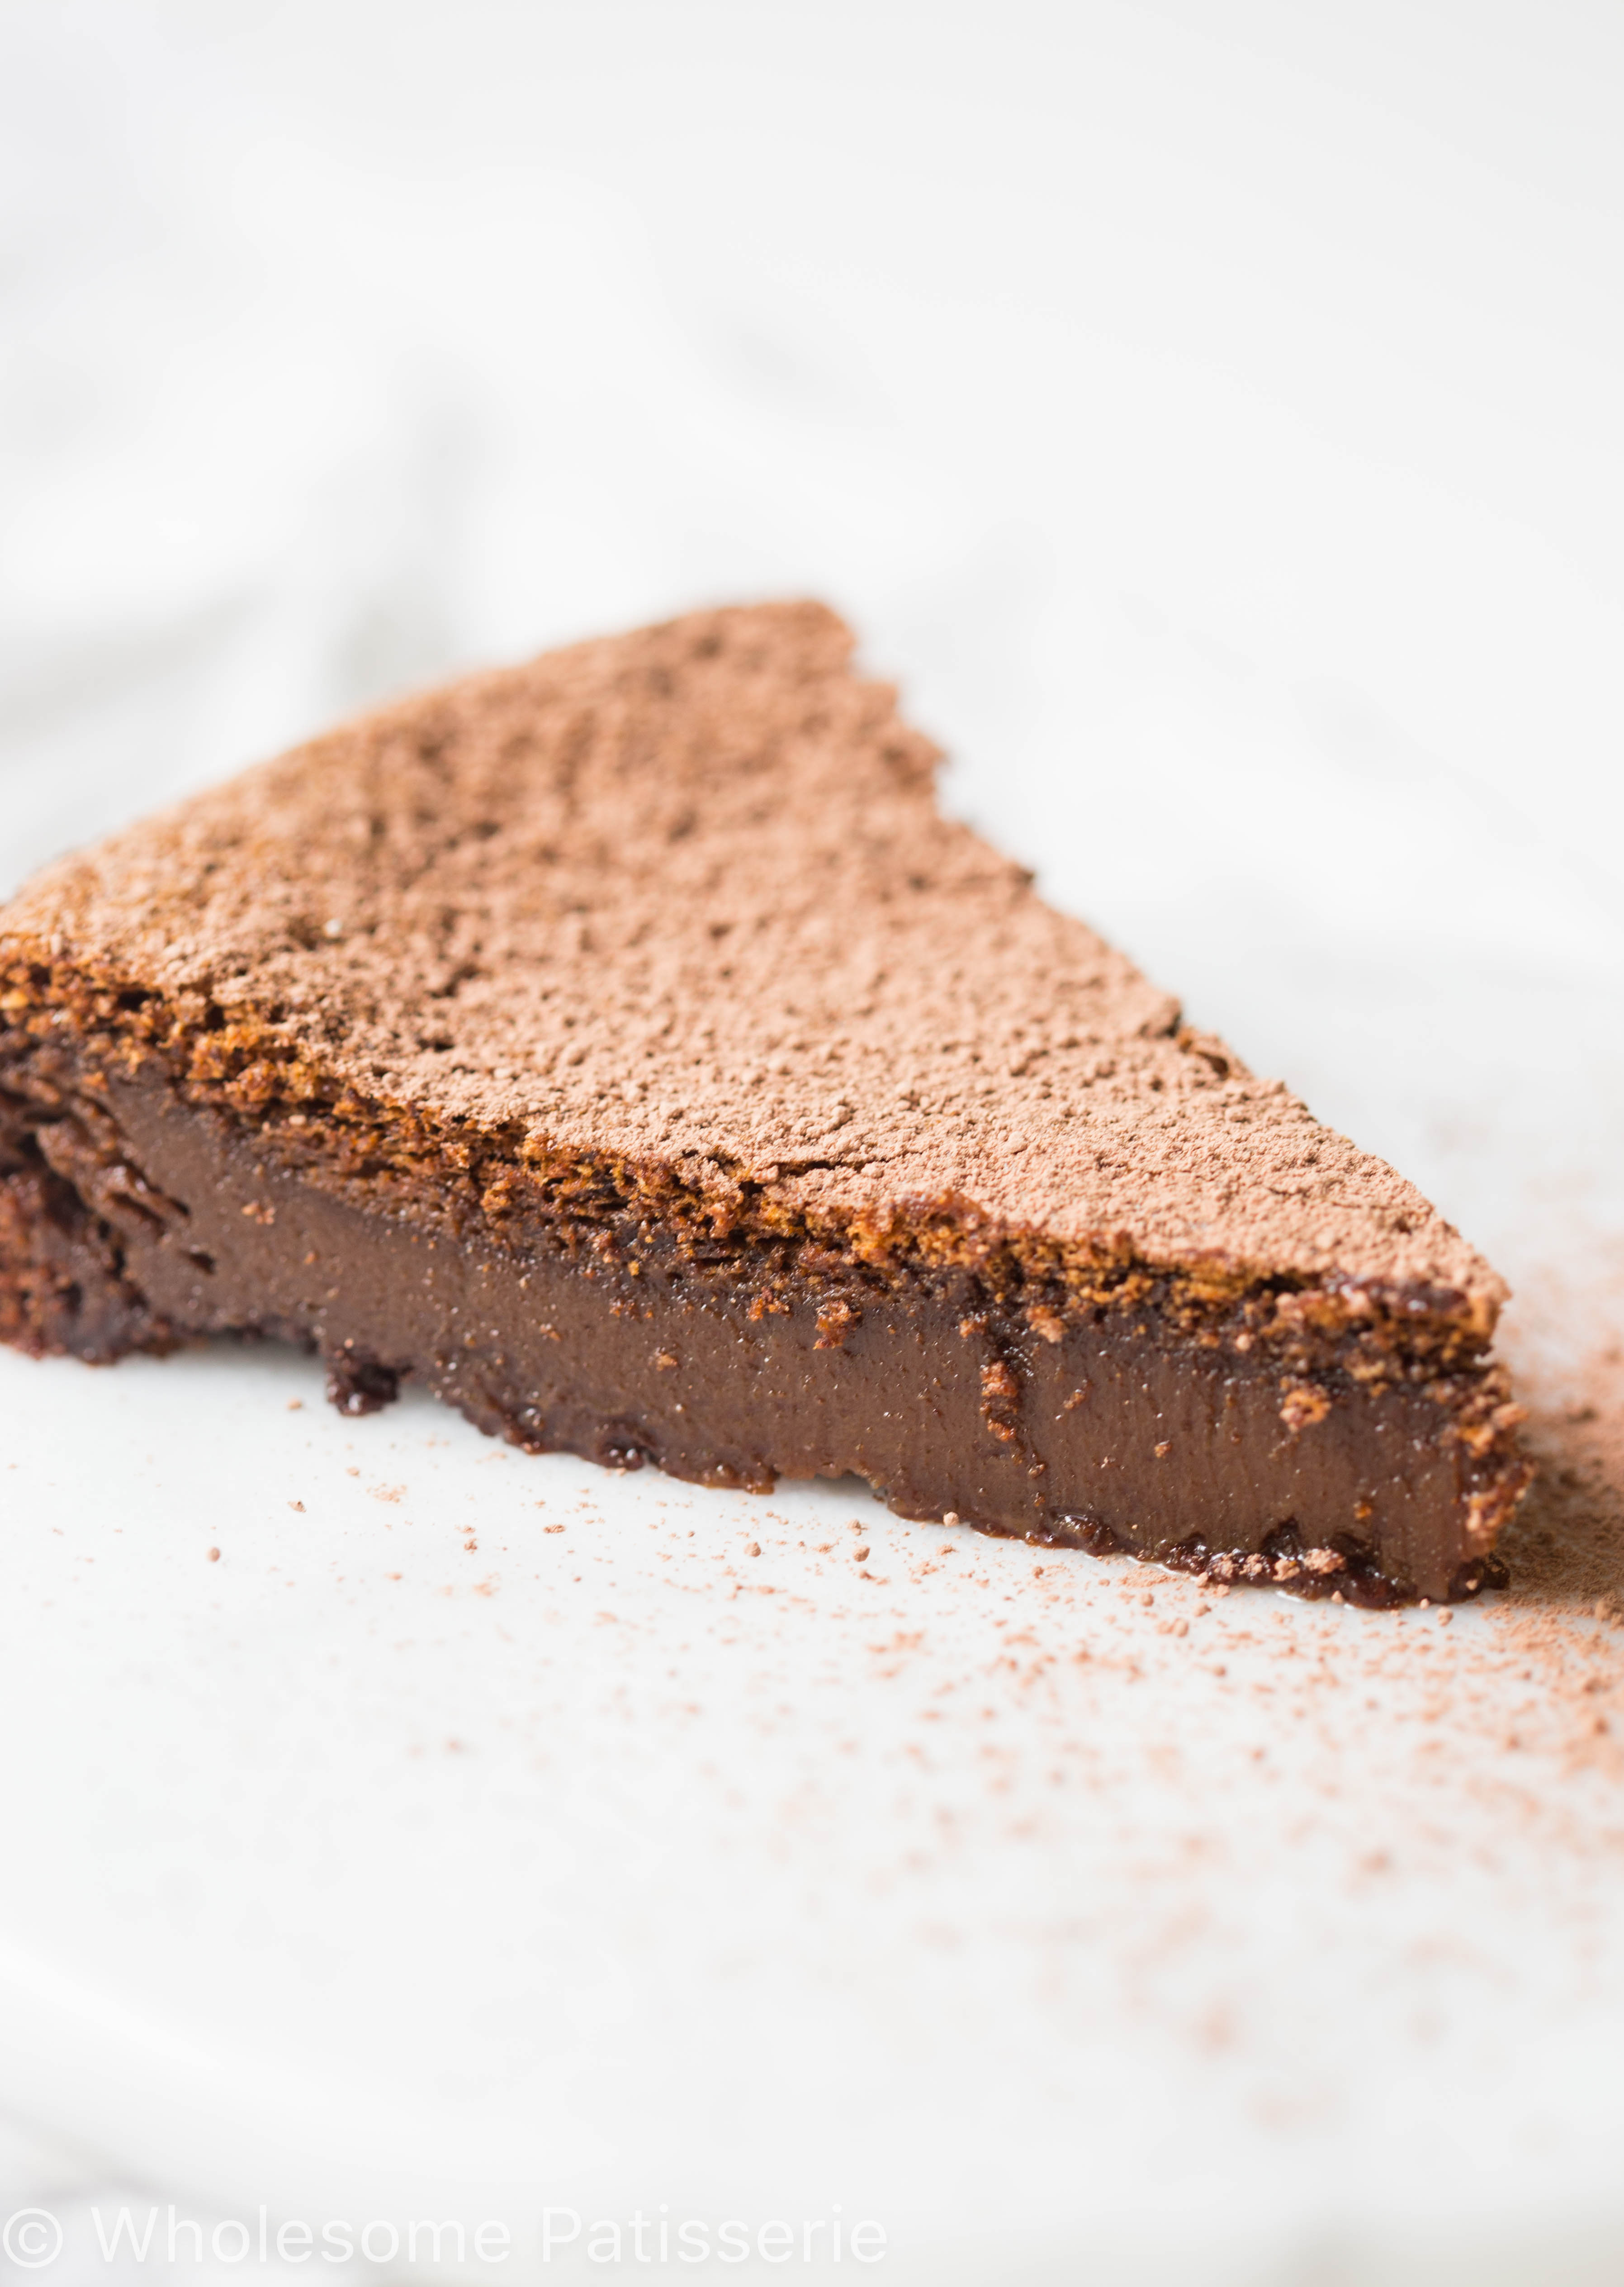 gluten-free-flourless-chocolate-cake-recipe-chocolate-baking-delicious-simple